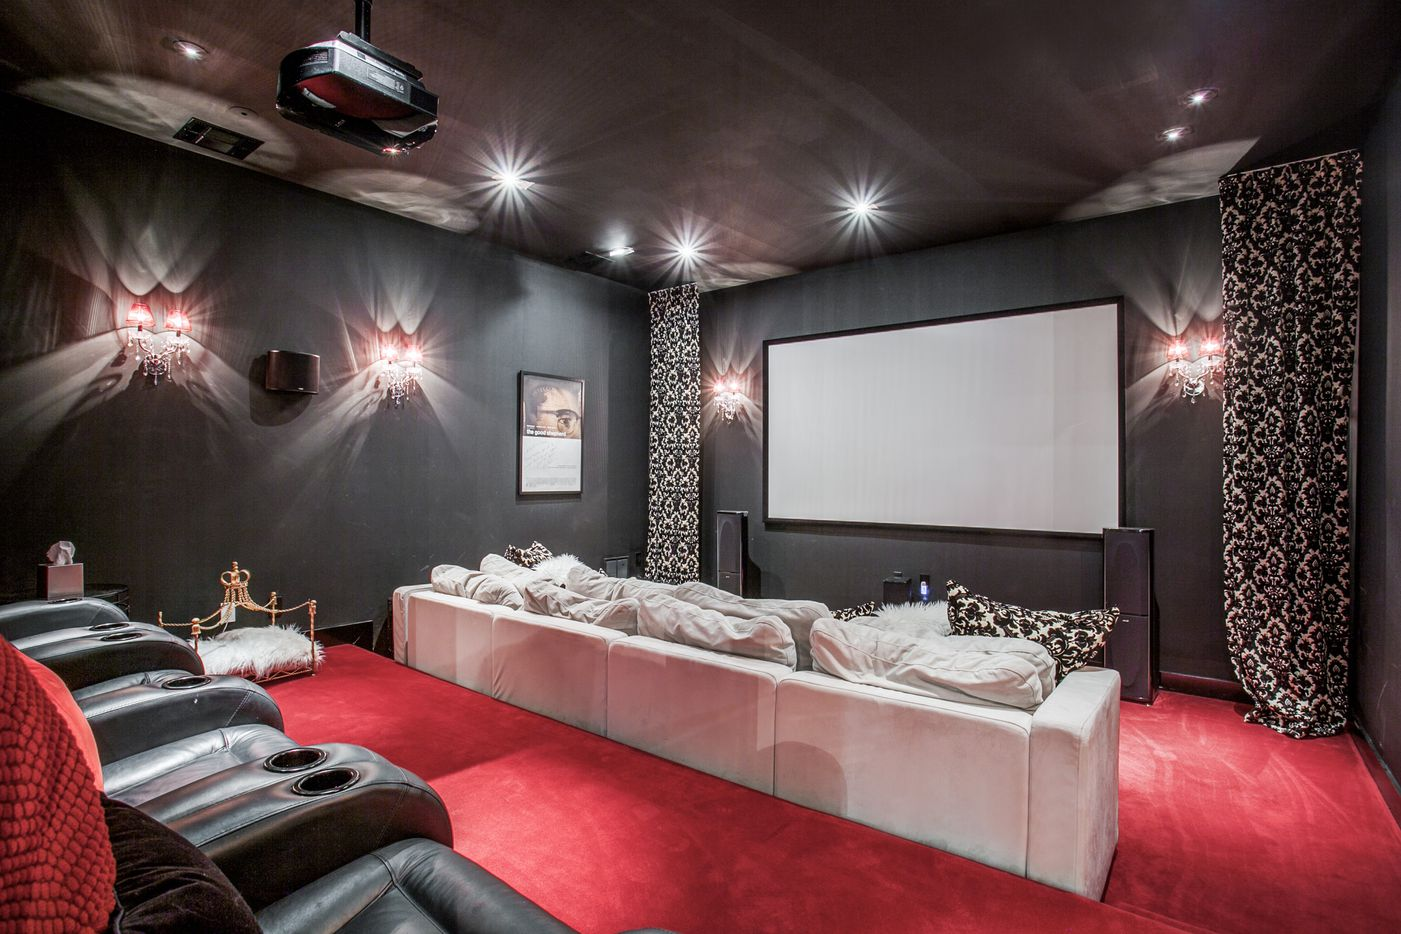 A look at the basement movie theater of the Dallas home Kameron Westcott is selling.